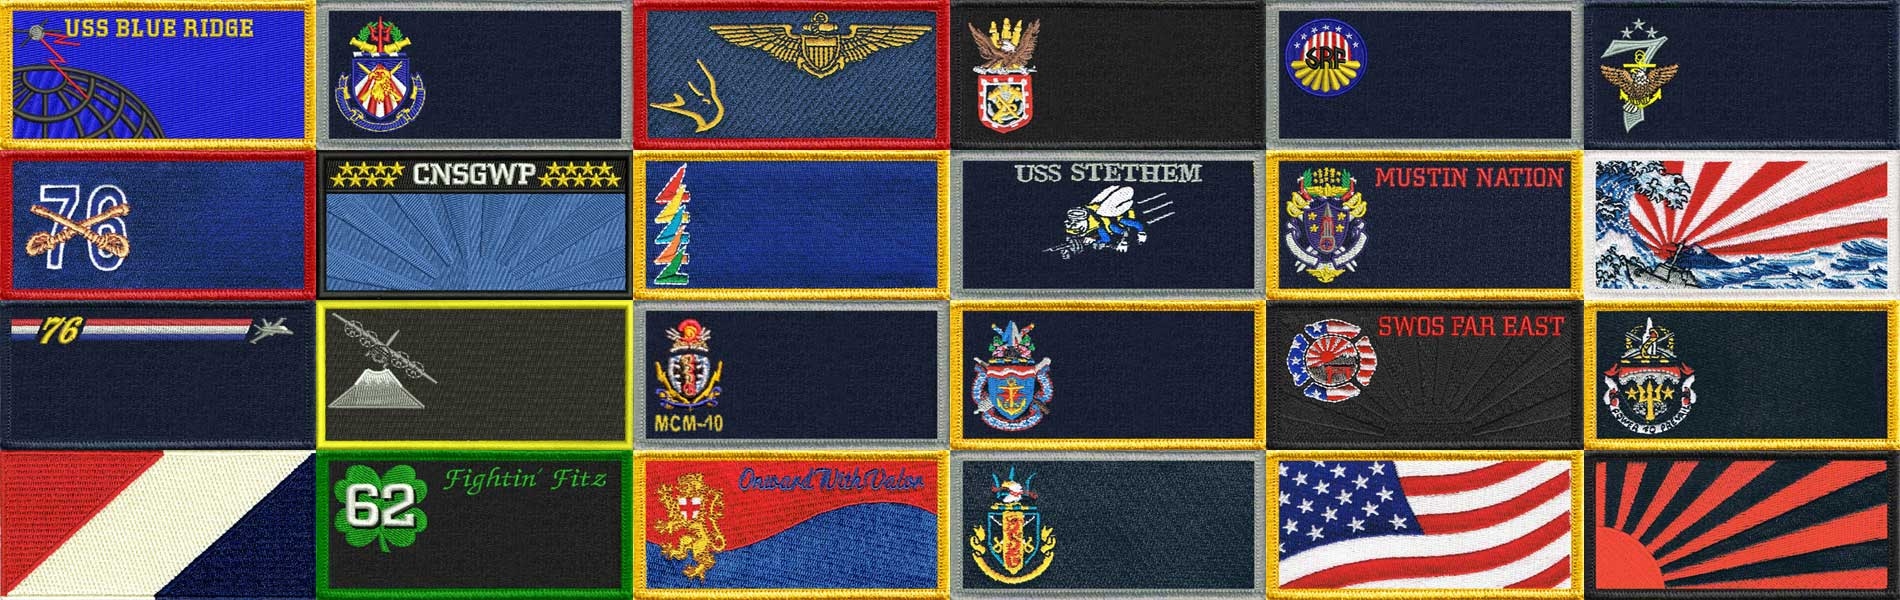 Military Uniform Name Patch